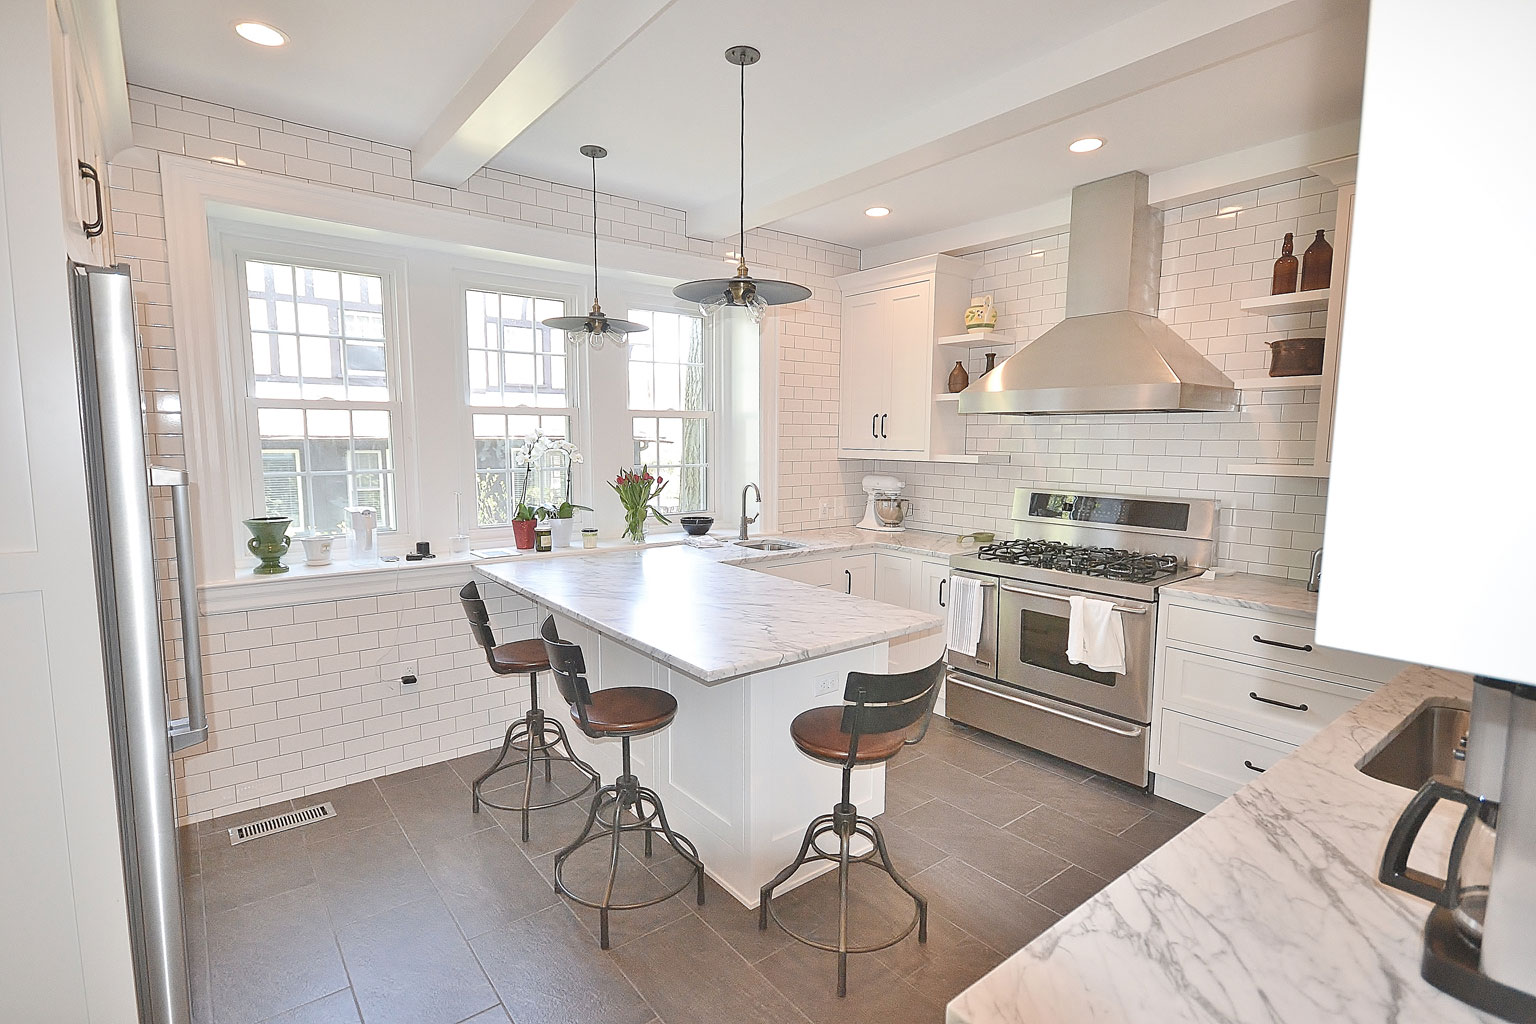 Chester county kitchen and bath kitchen trends for Trends kitchens and bathrooms